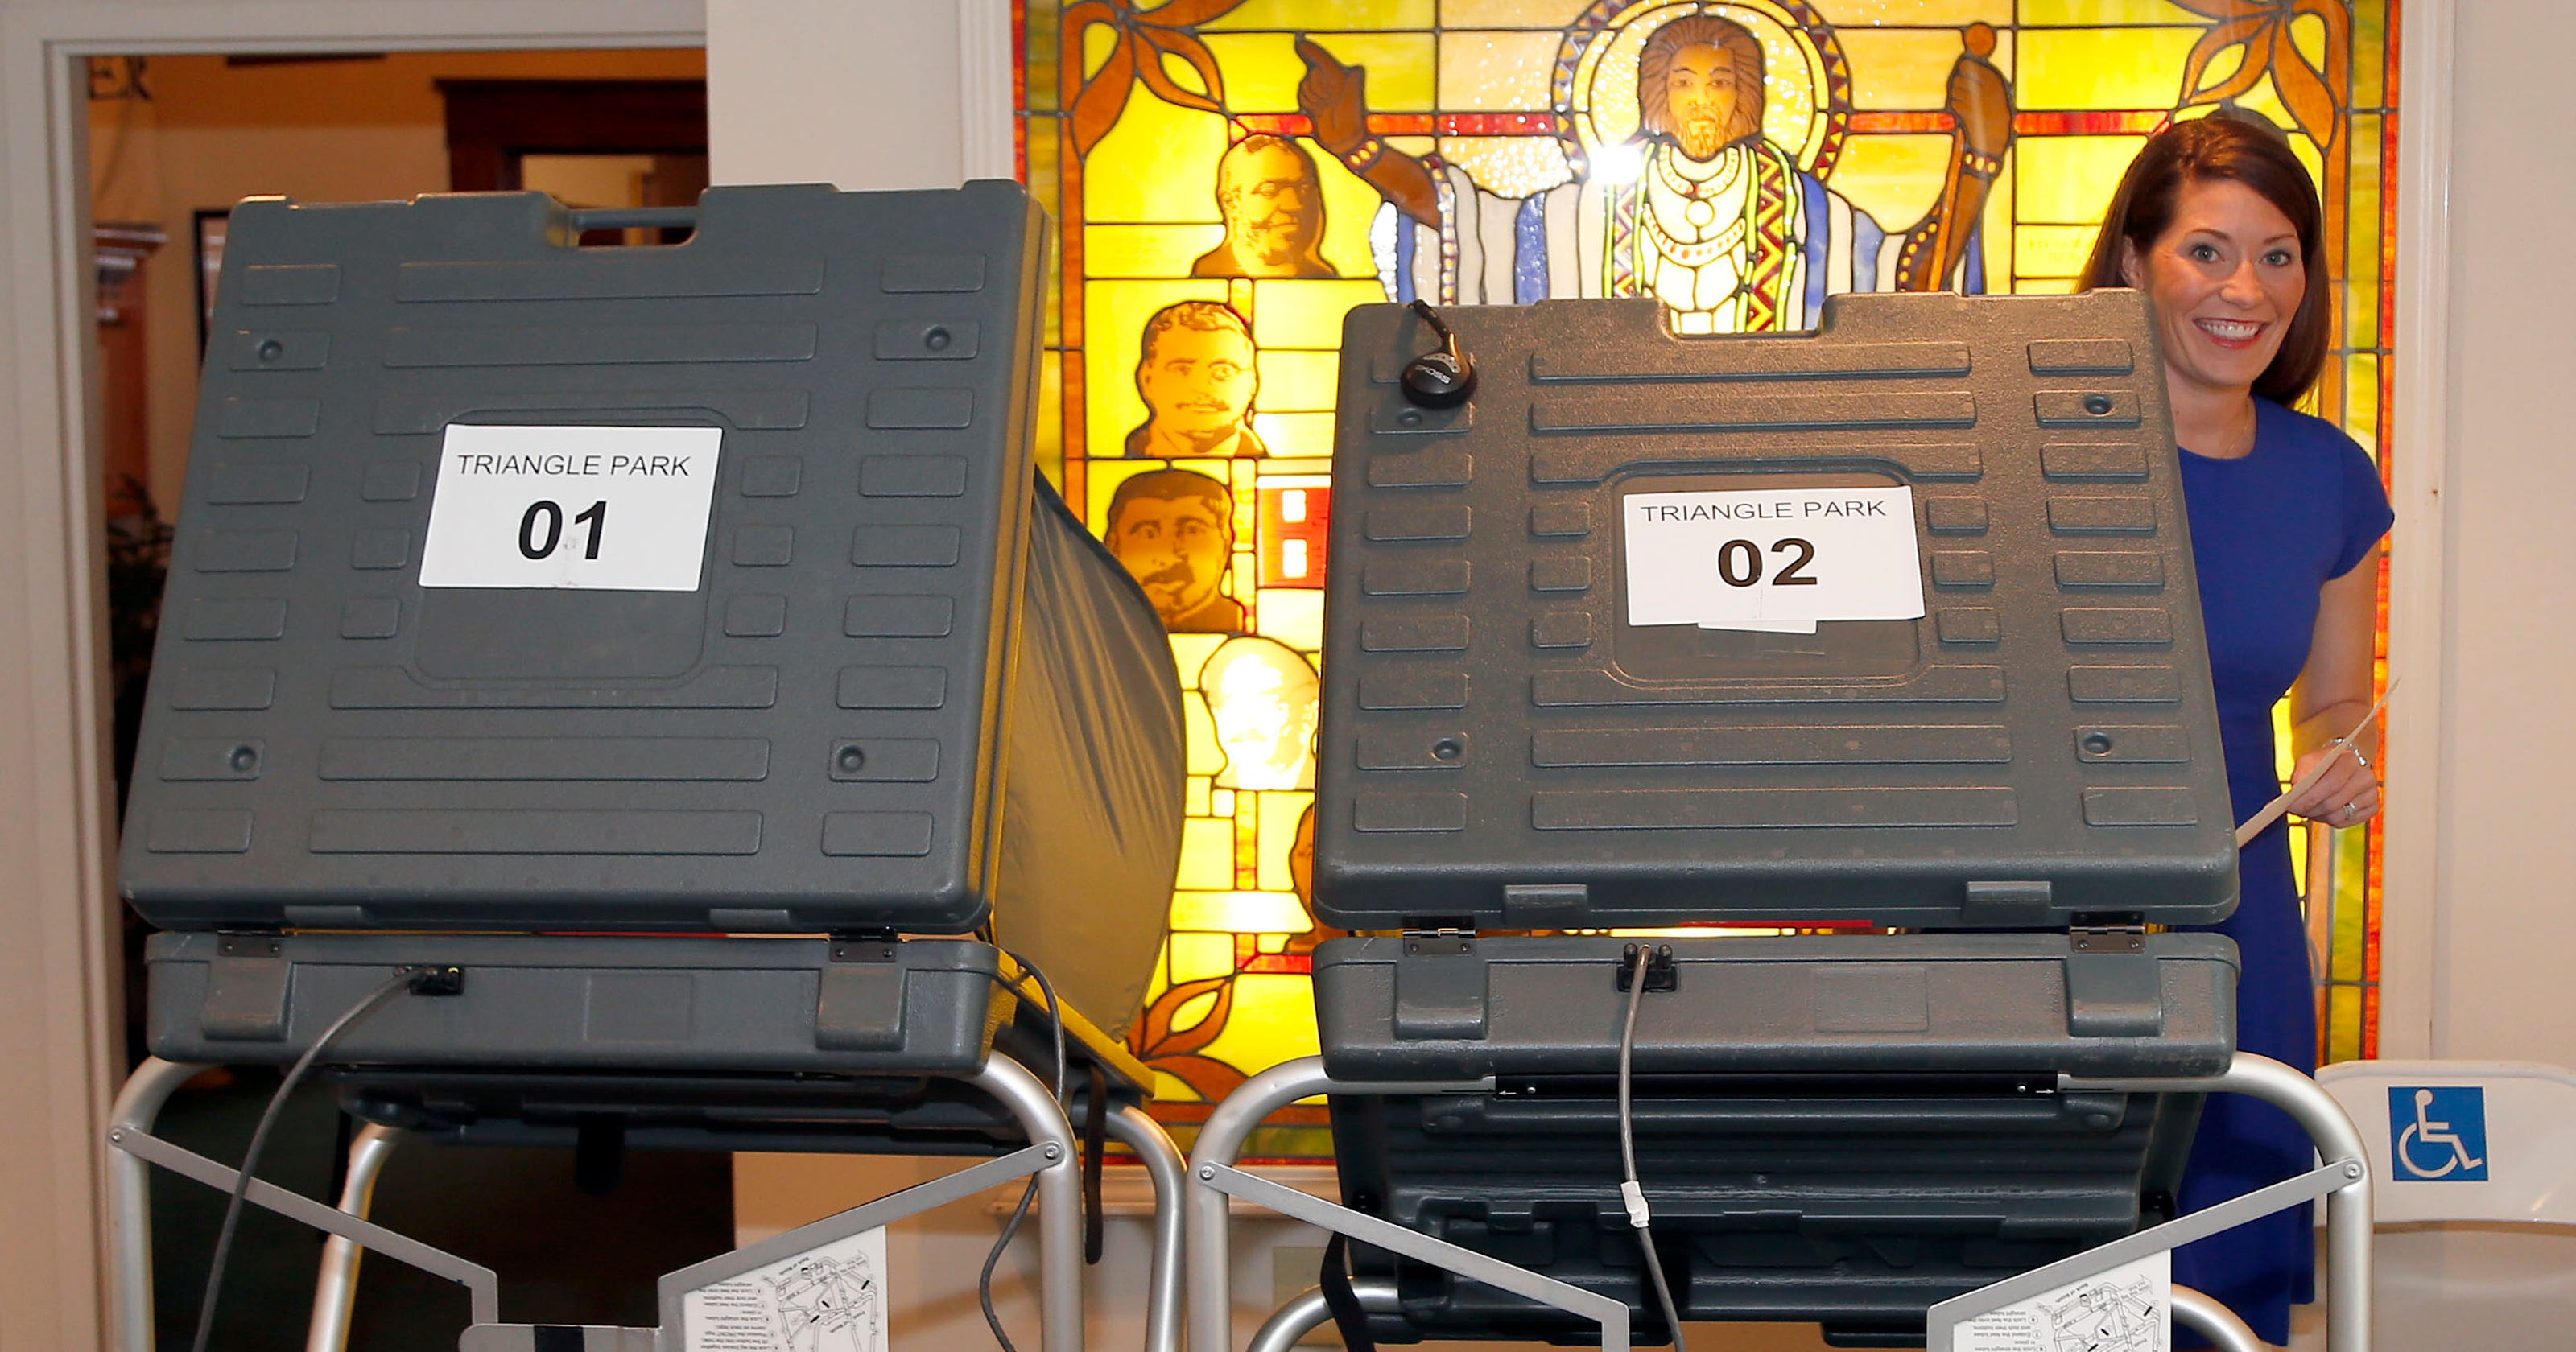 Kentucky wants to replace its voting machines